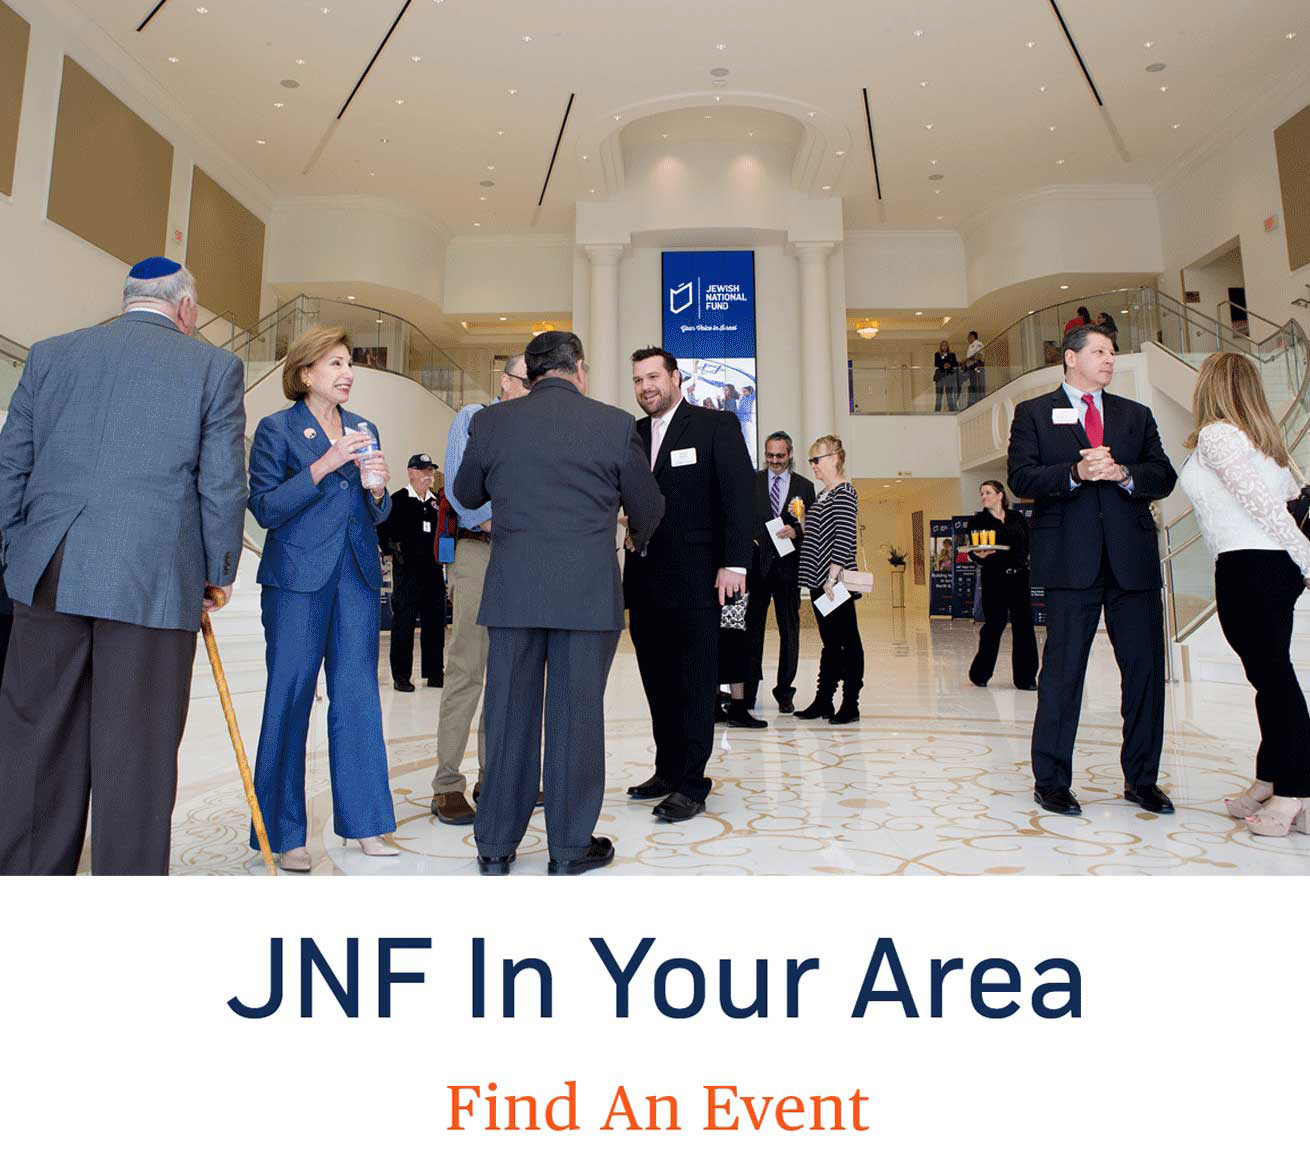 JNF in your area